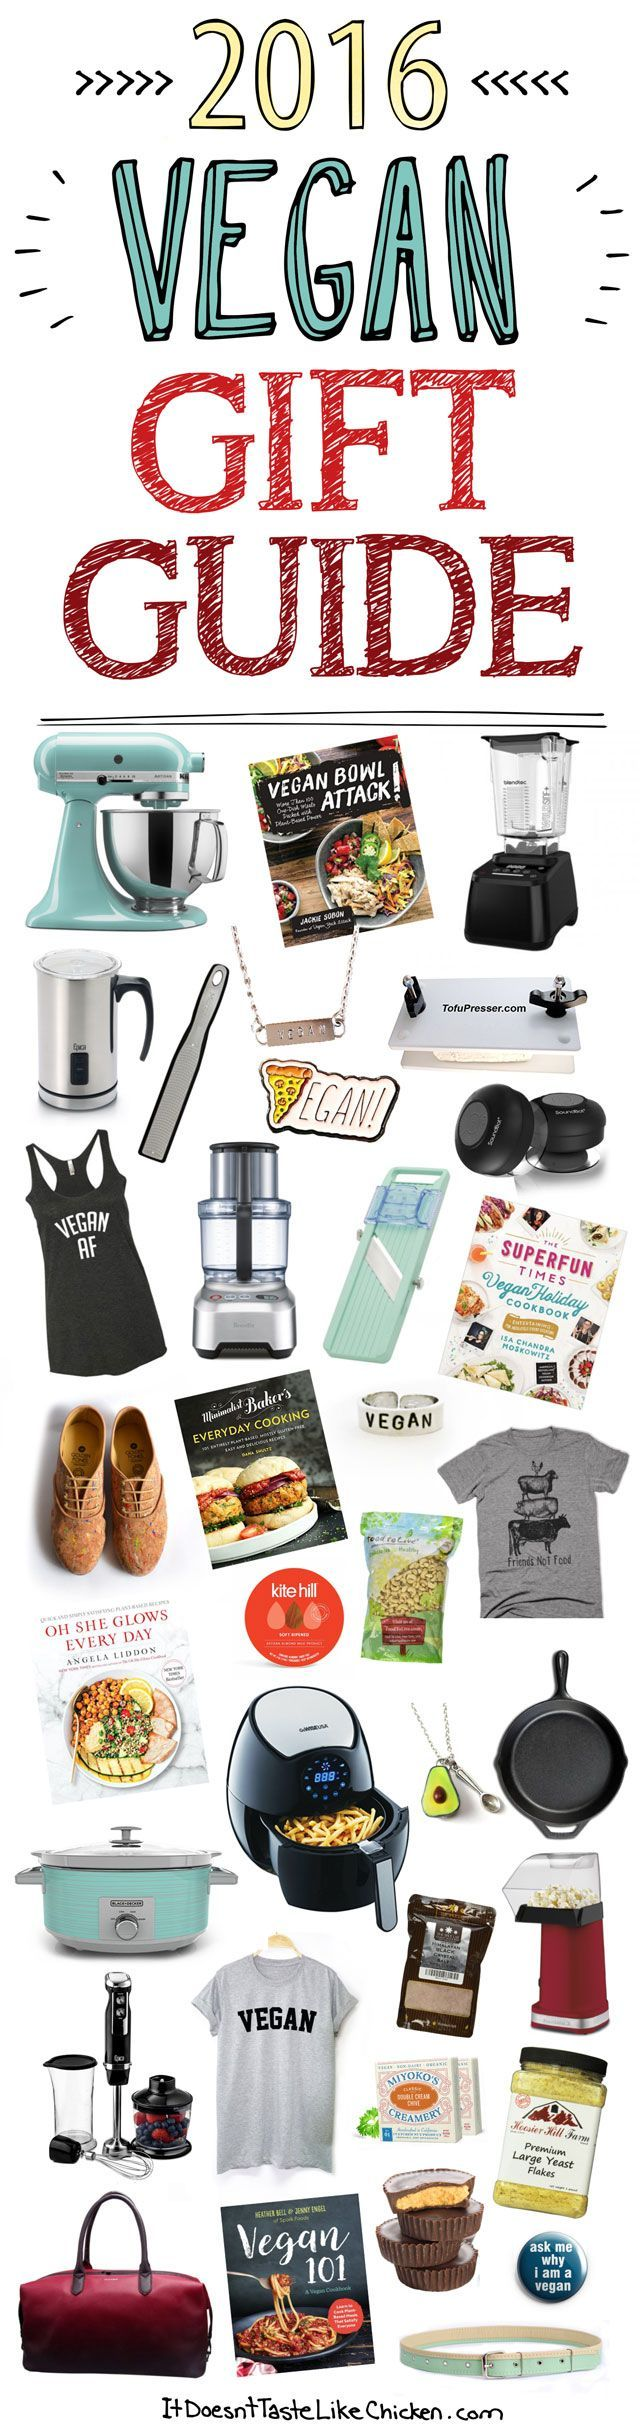 2016 Vegan Gift Guide to make all your holiday shopping easy. Lots of ideas to fit every budget. Just in time for Christmas! #itdoesnttastelikechicken